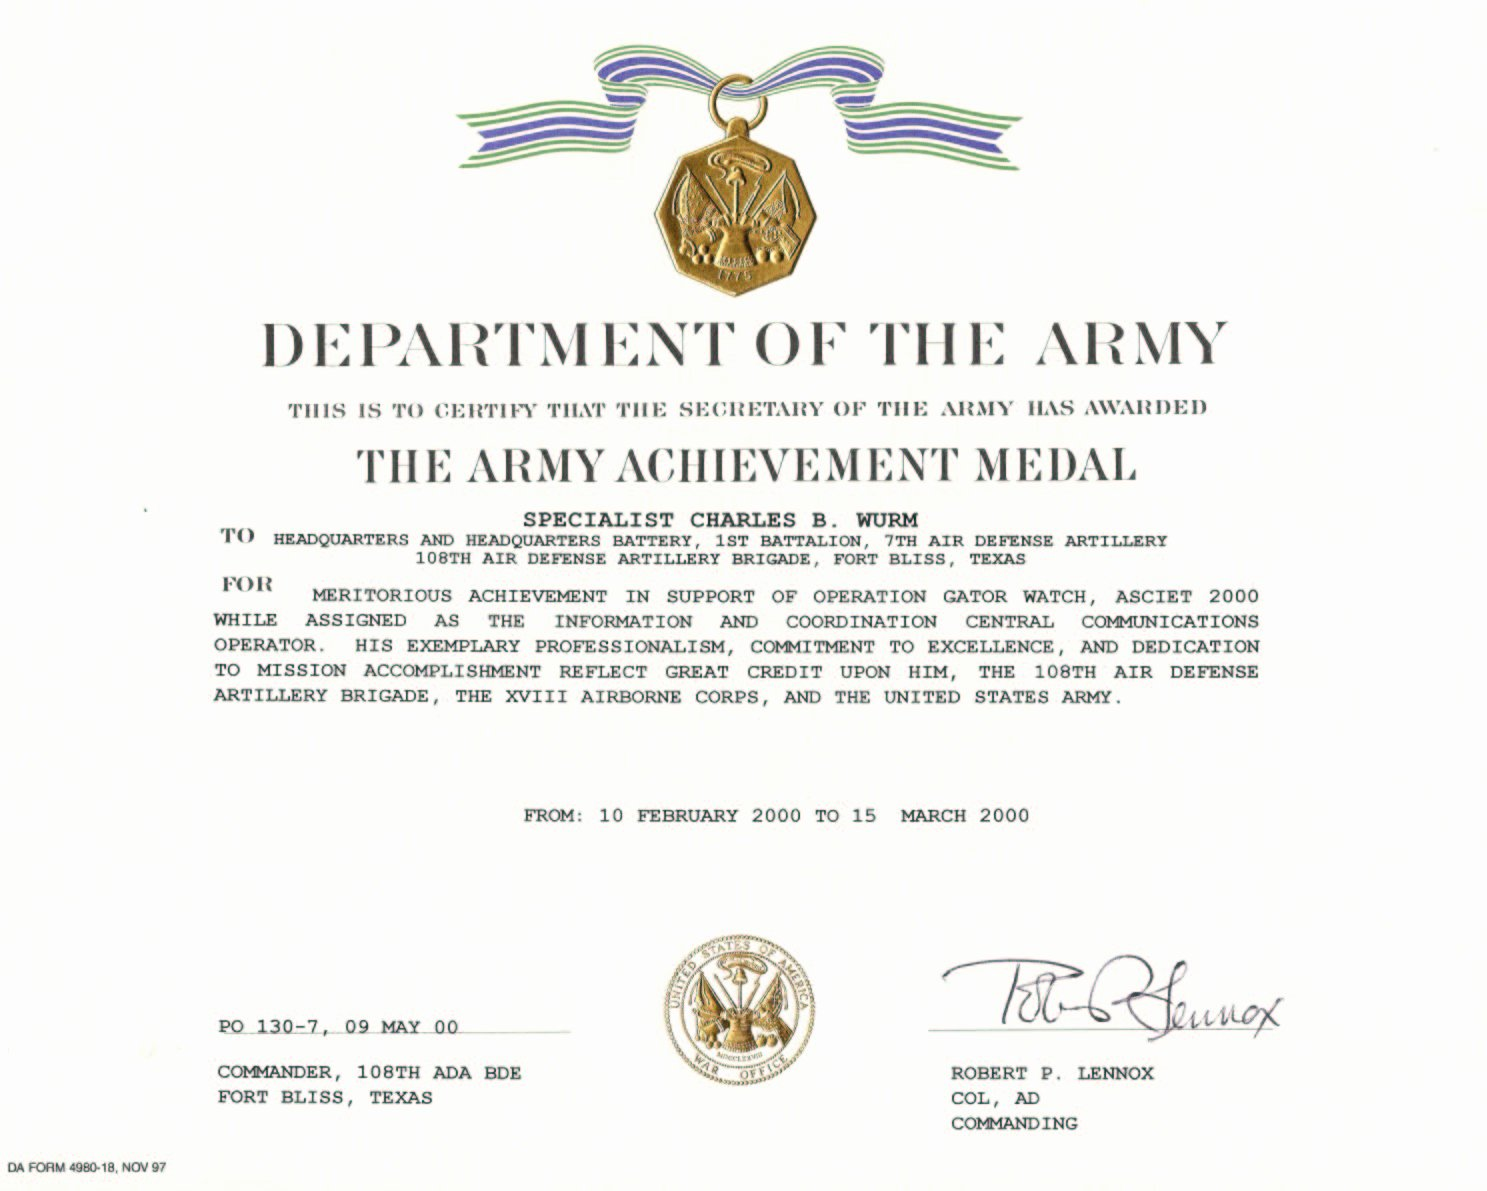 Army Award Certificate Template Best Of form Army Award form